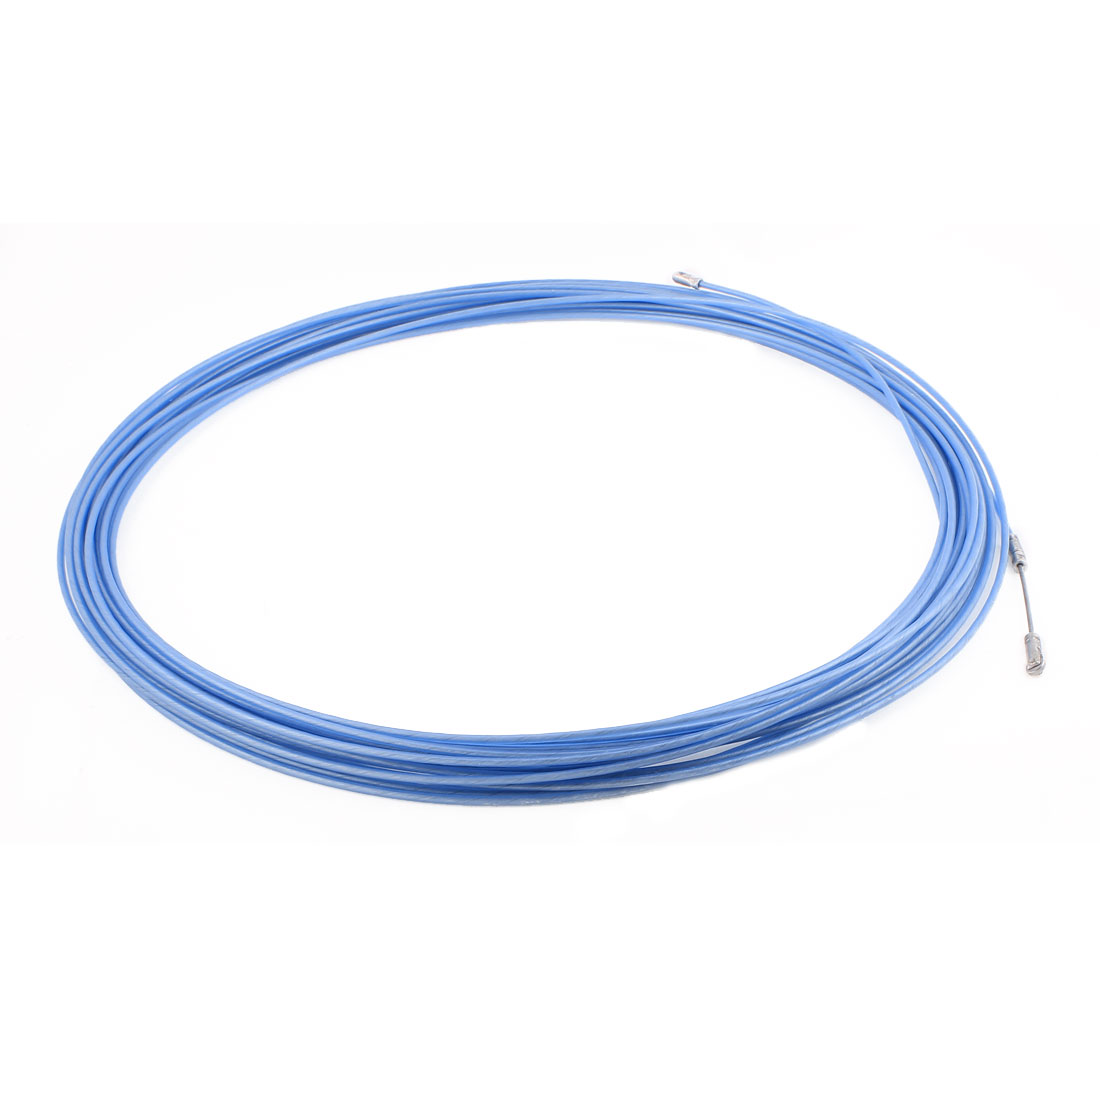 20M 65ft Long Blue Electrical Steel Wire Threader Cable Lead Puller Pulling